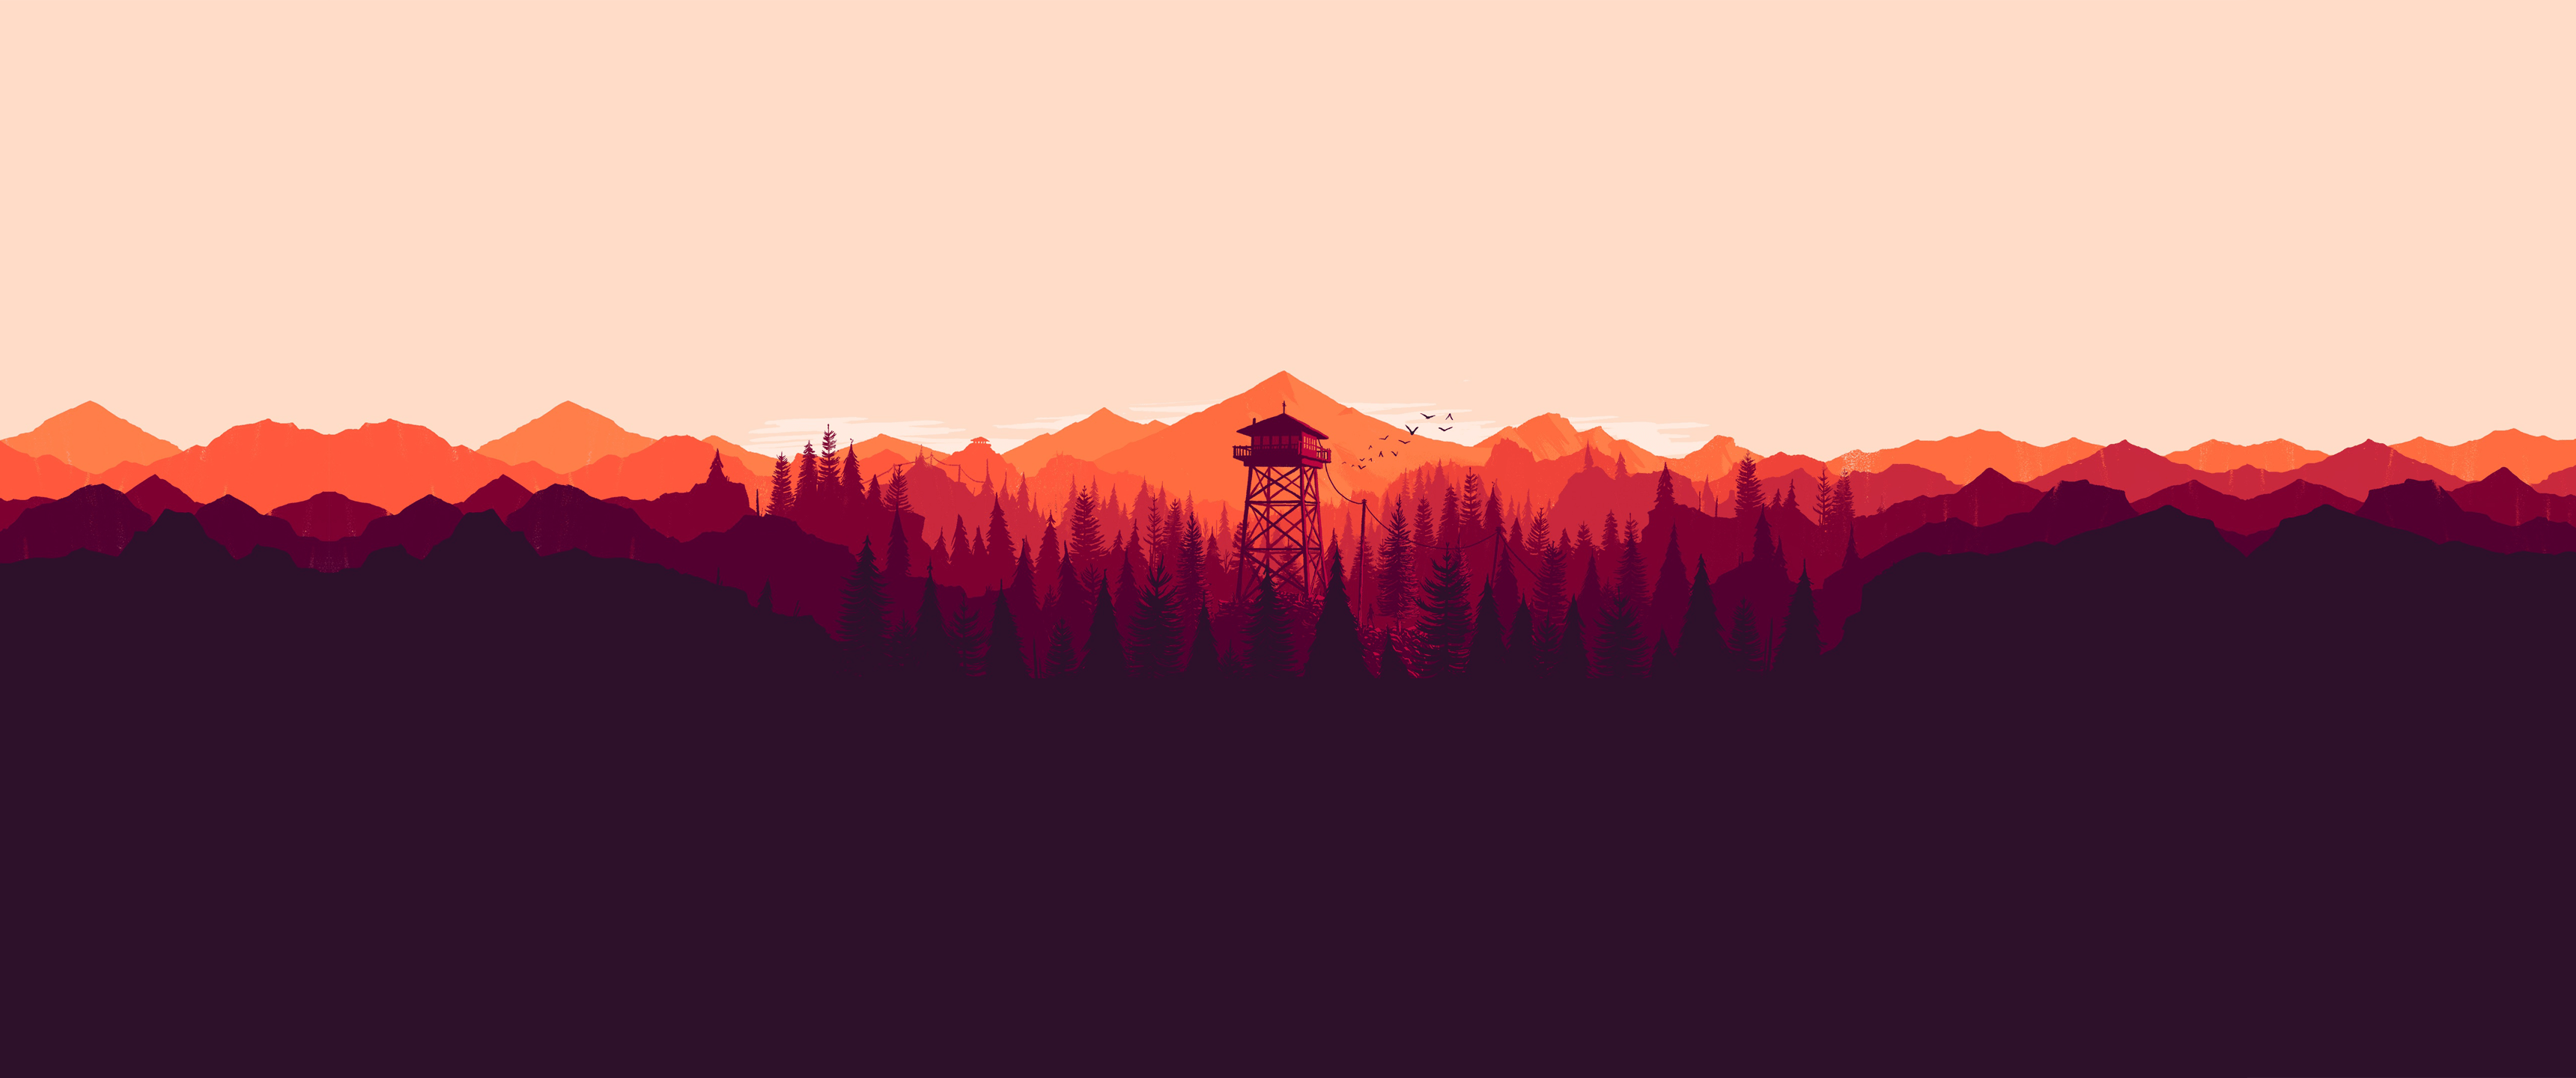 Ultrawide Wallpapers - Top Free